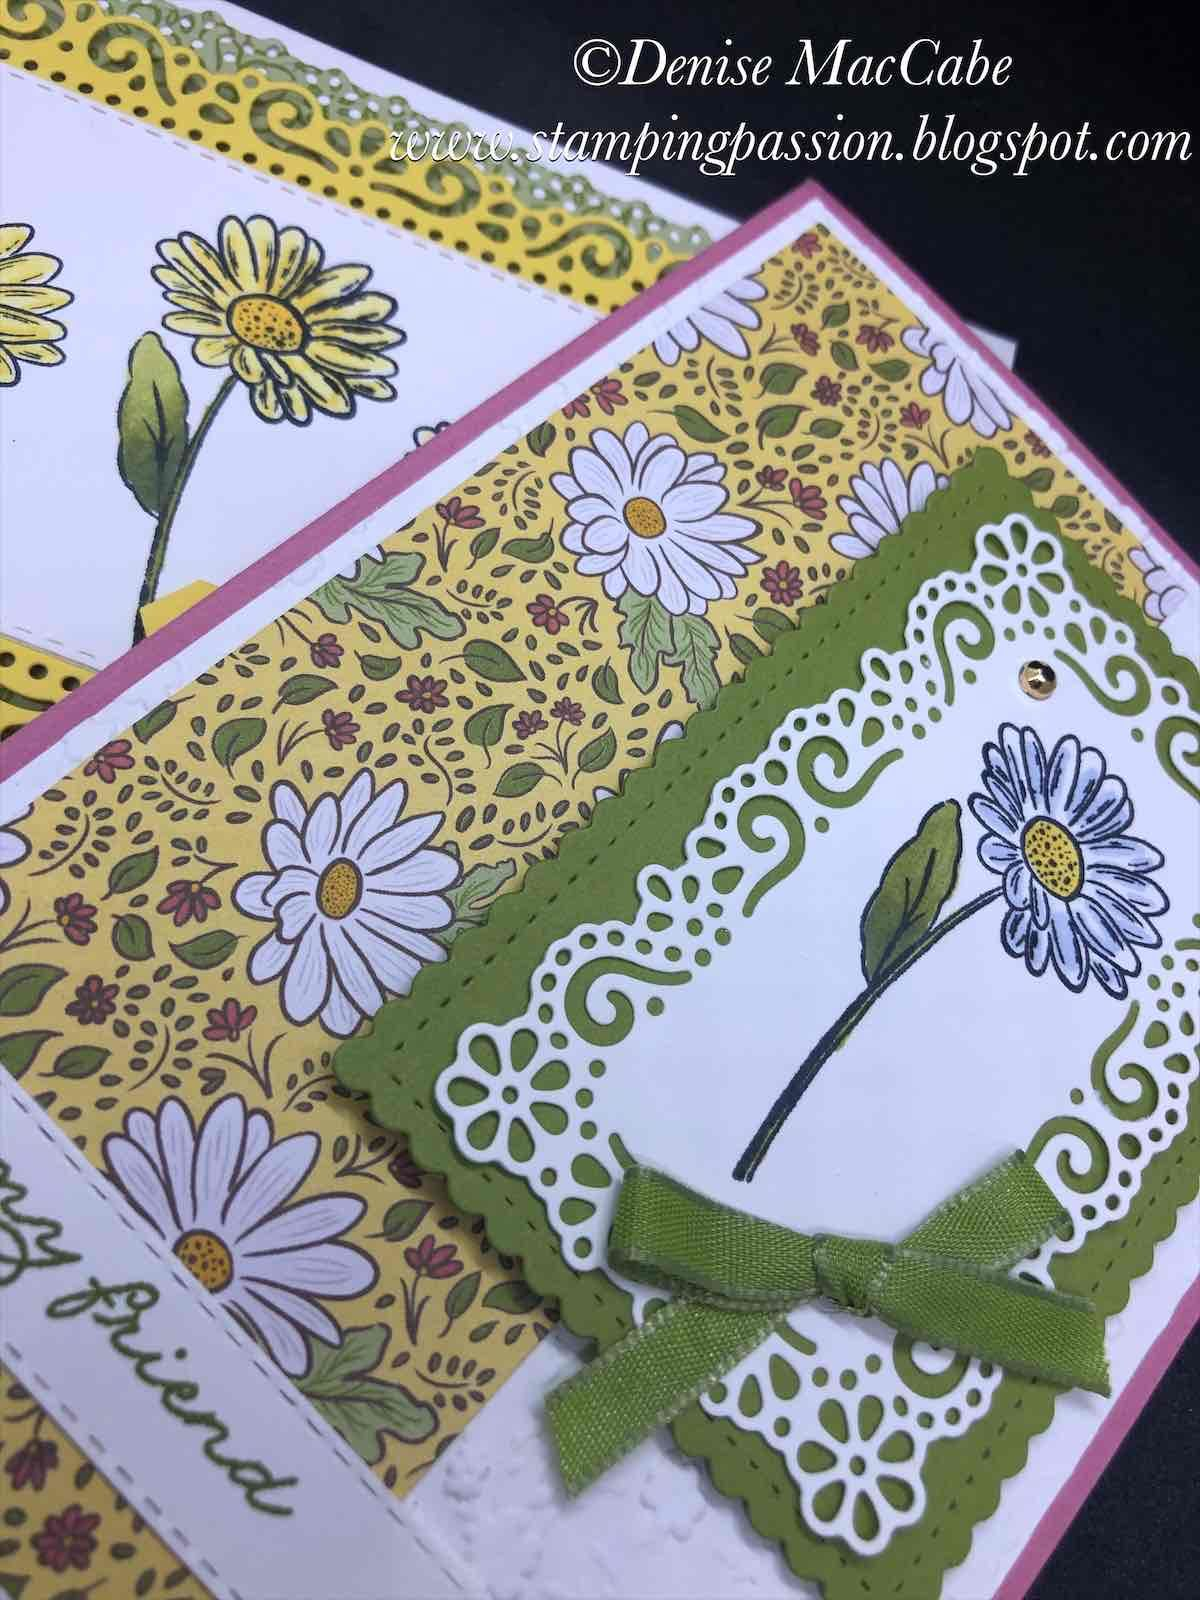 Stamping Passion Ornate Garden Online Class in 2020